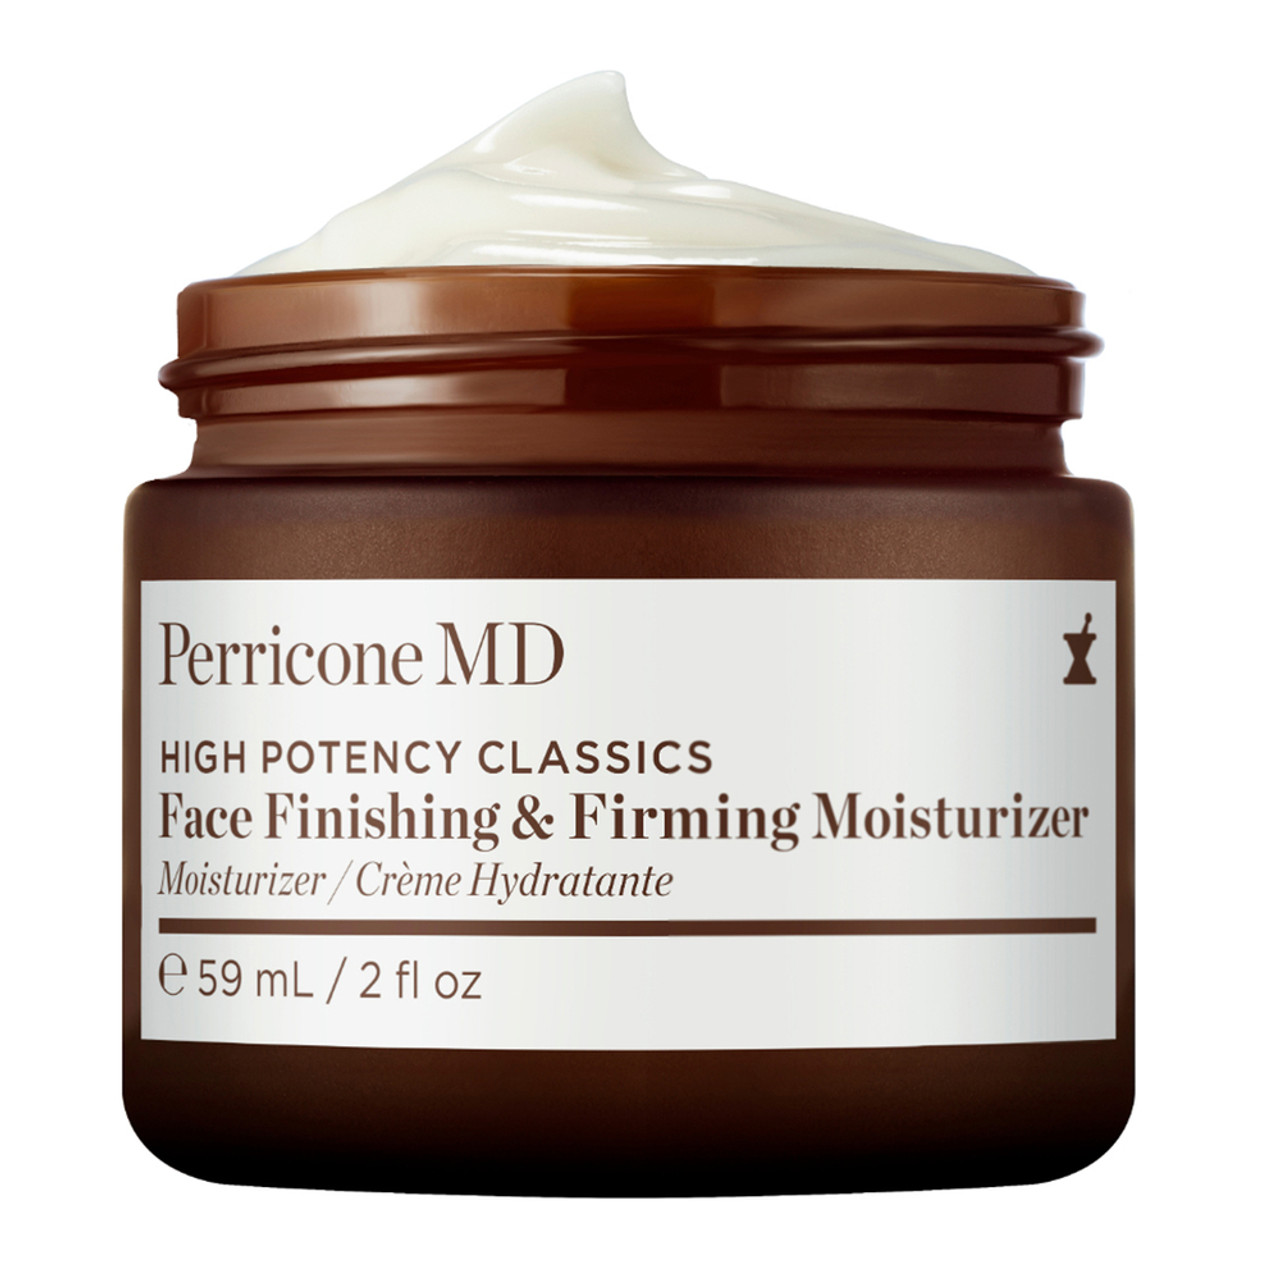 Perricone MD Face Finishing & Firming Moisturizer 2 fl oz